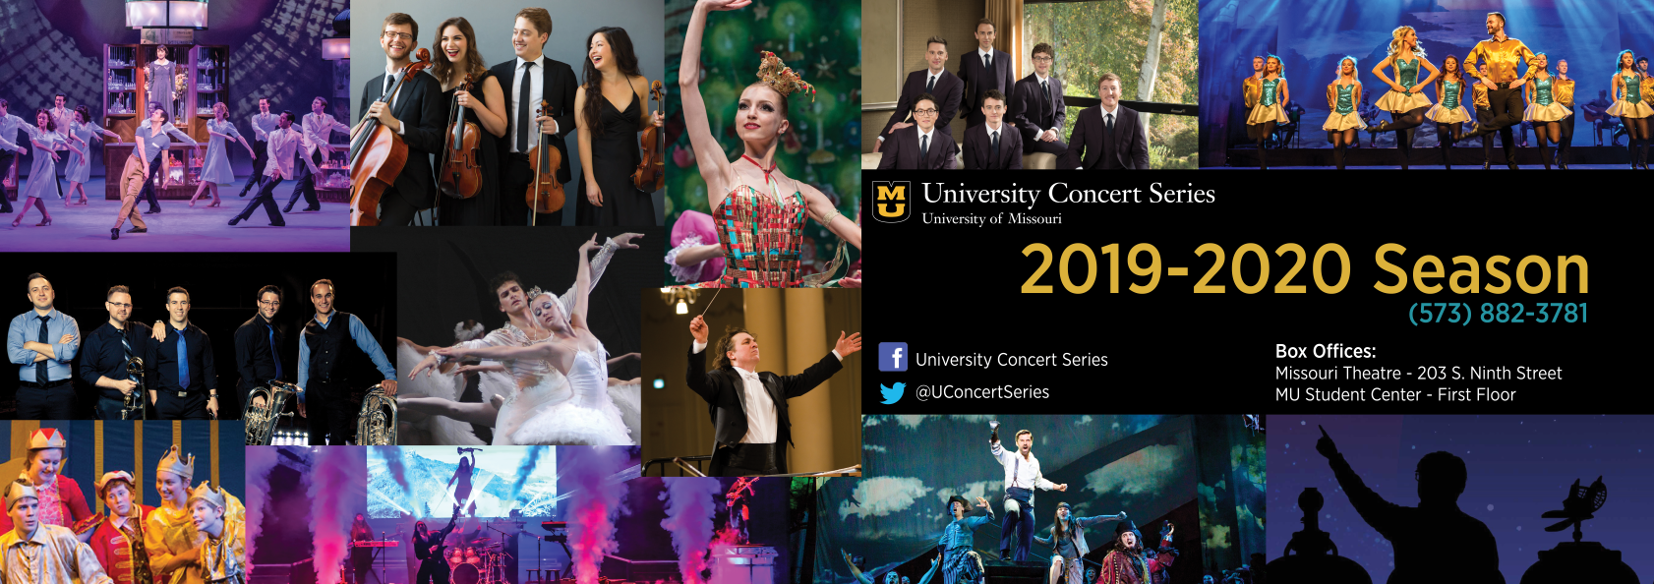 Collage of images from the 2019-2020 season of the University Concert Series